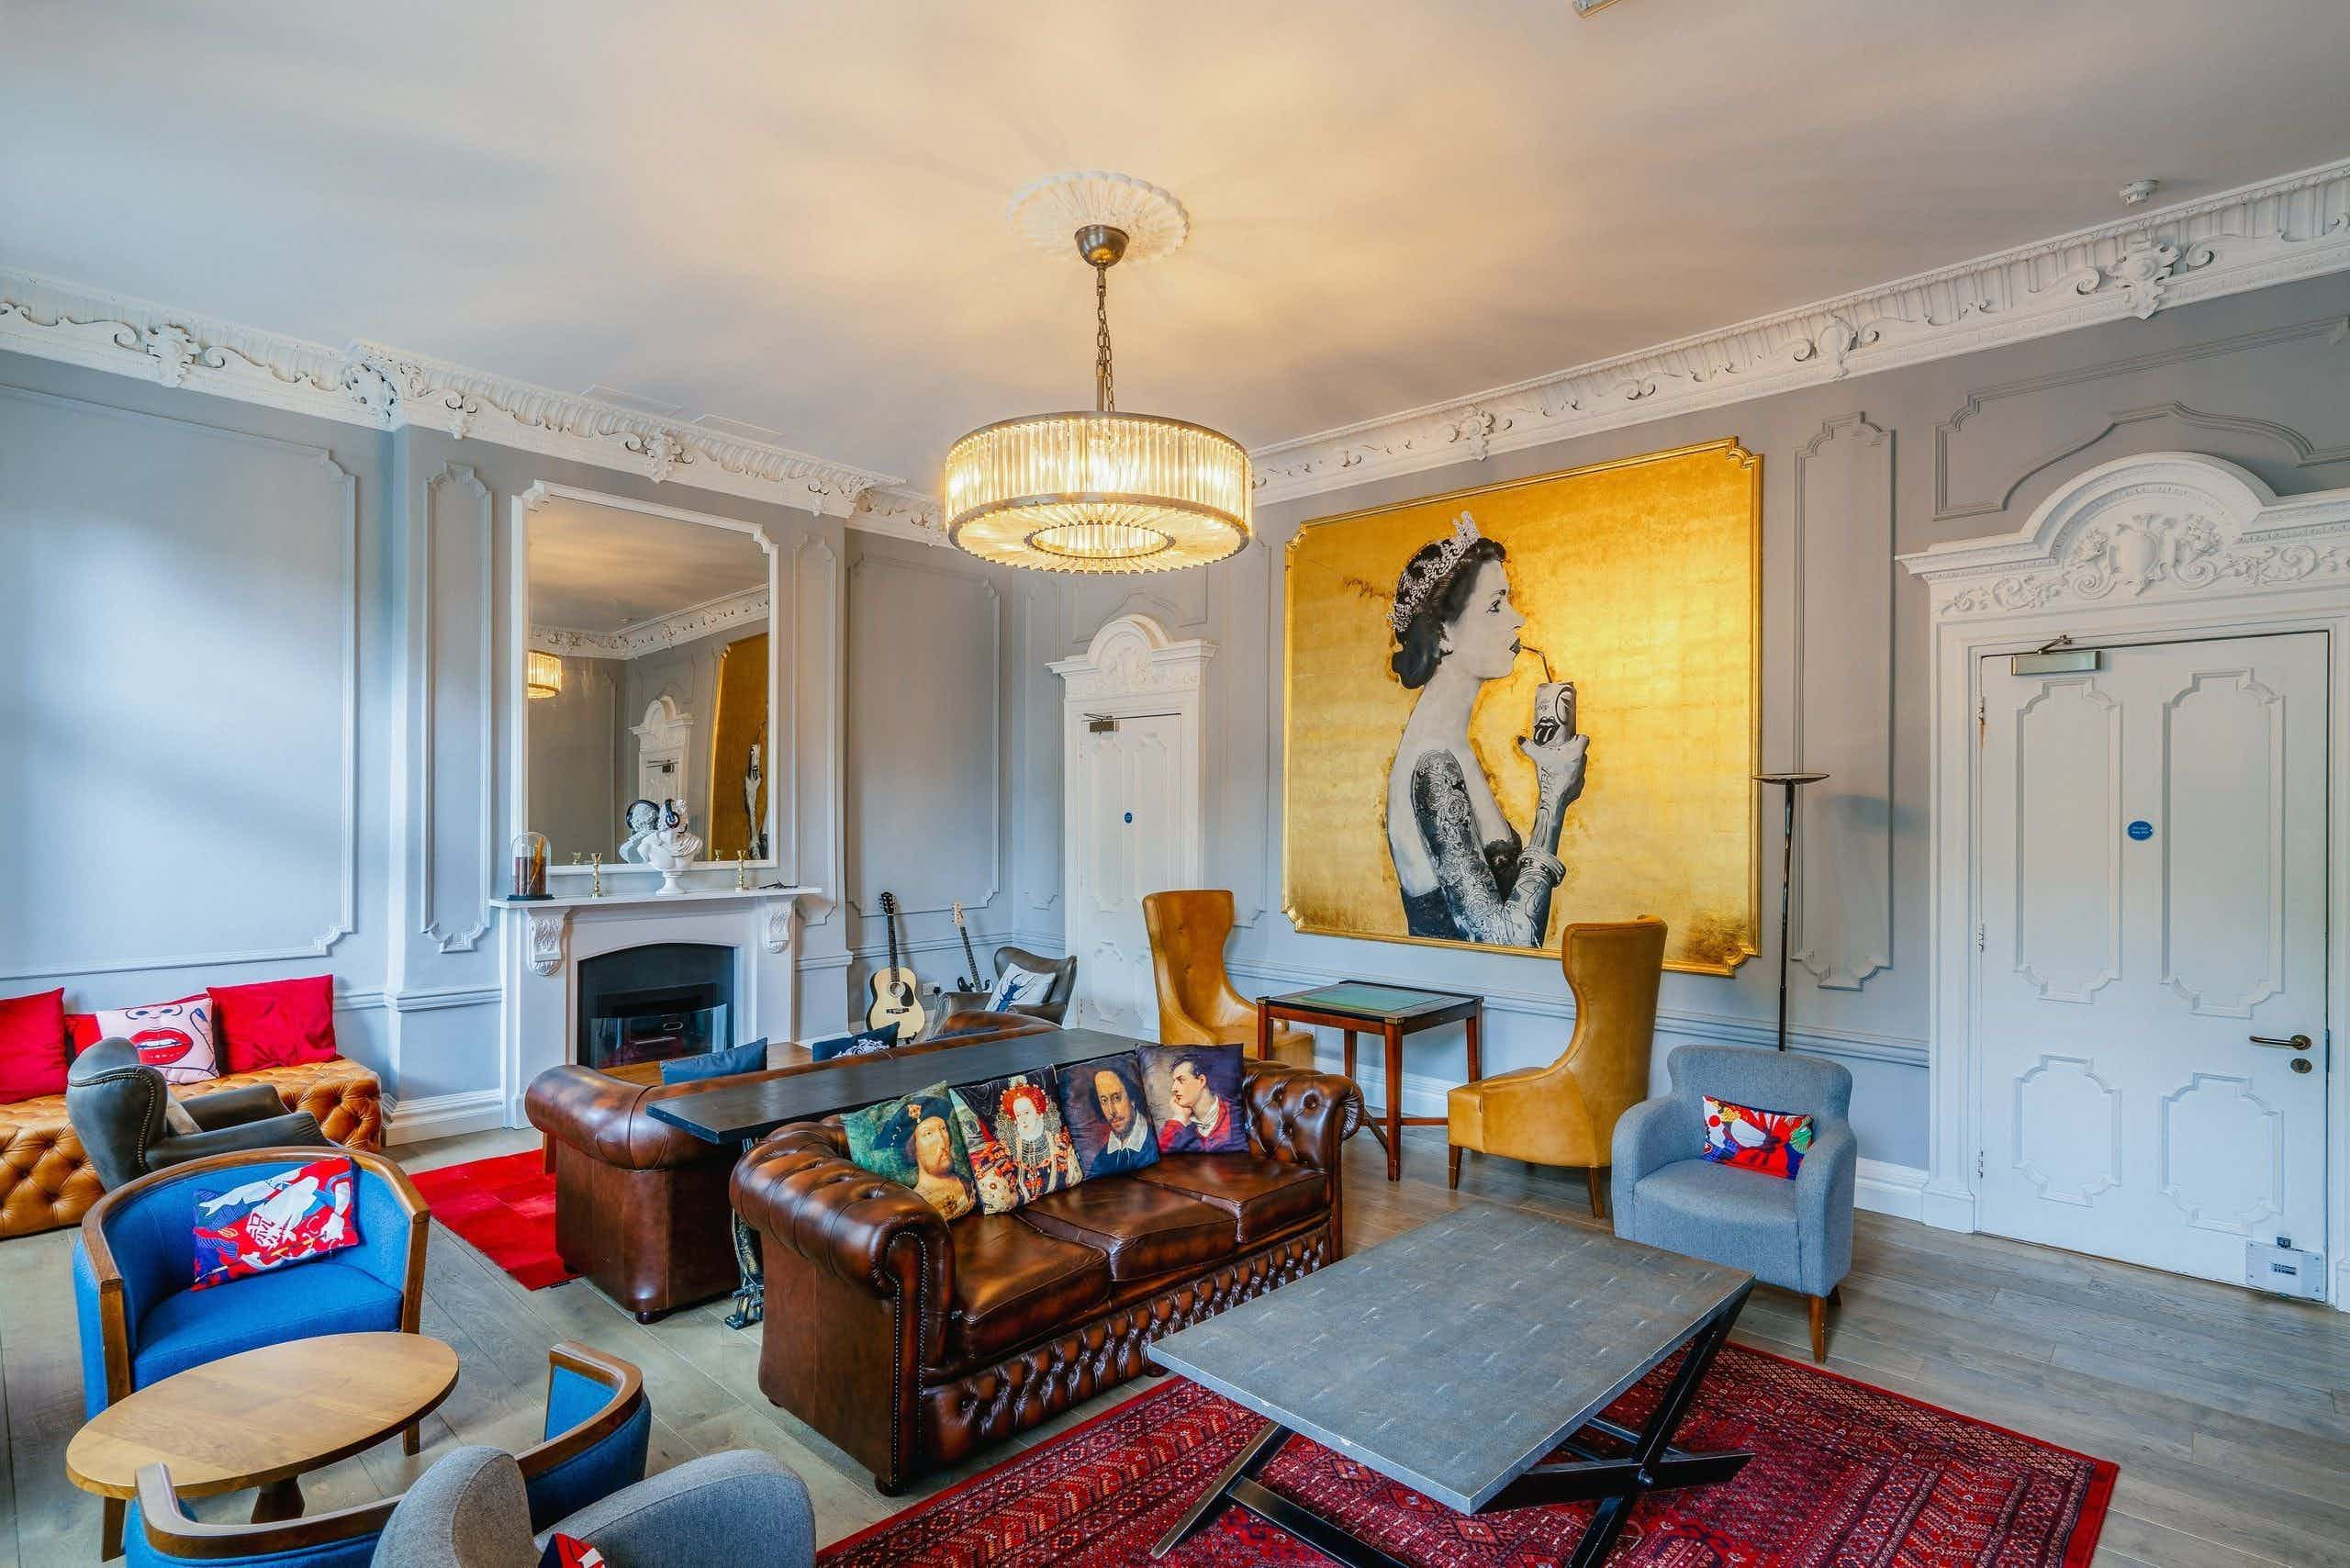 The Lounge, CIEE, Russell Square